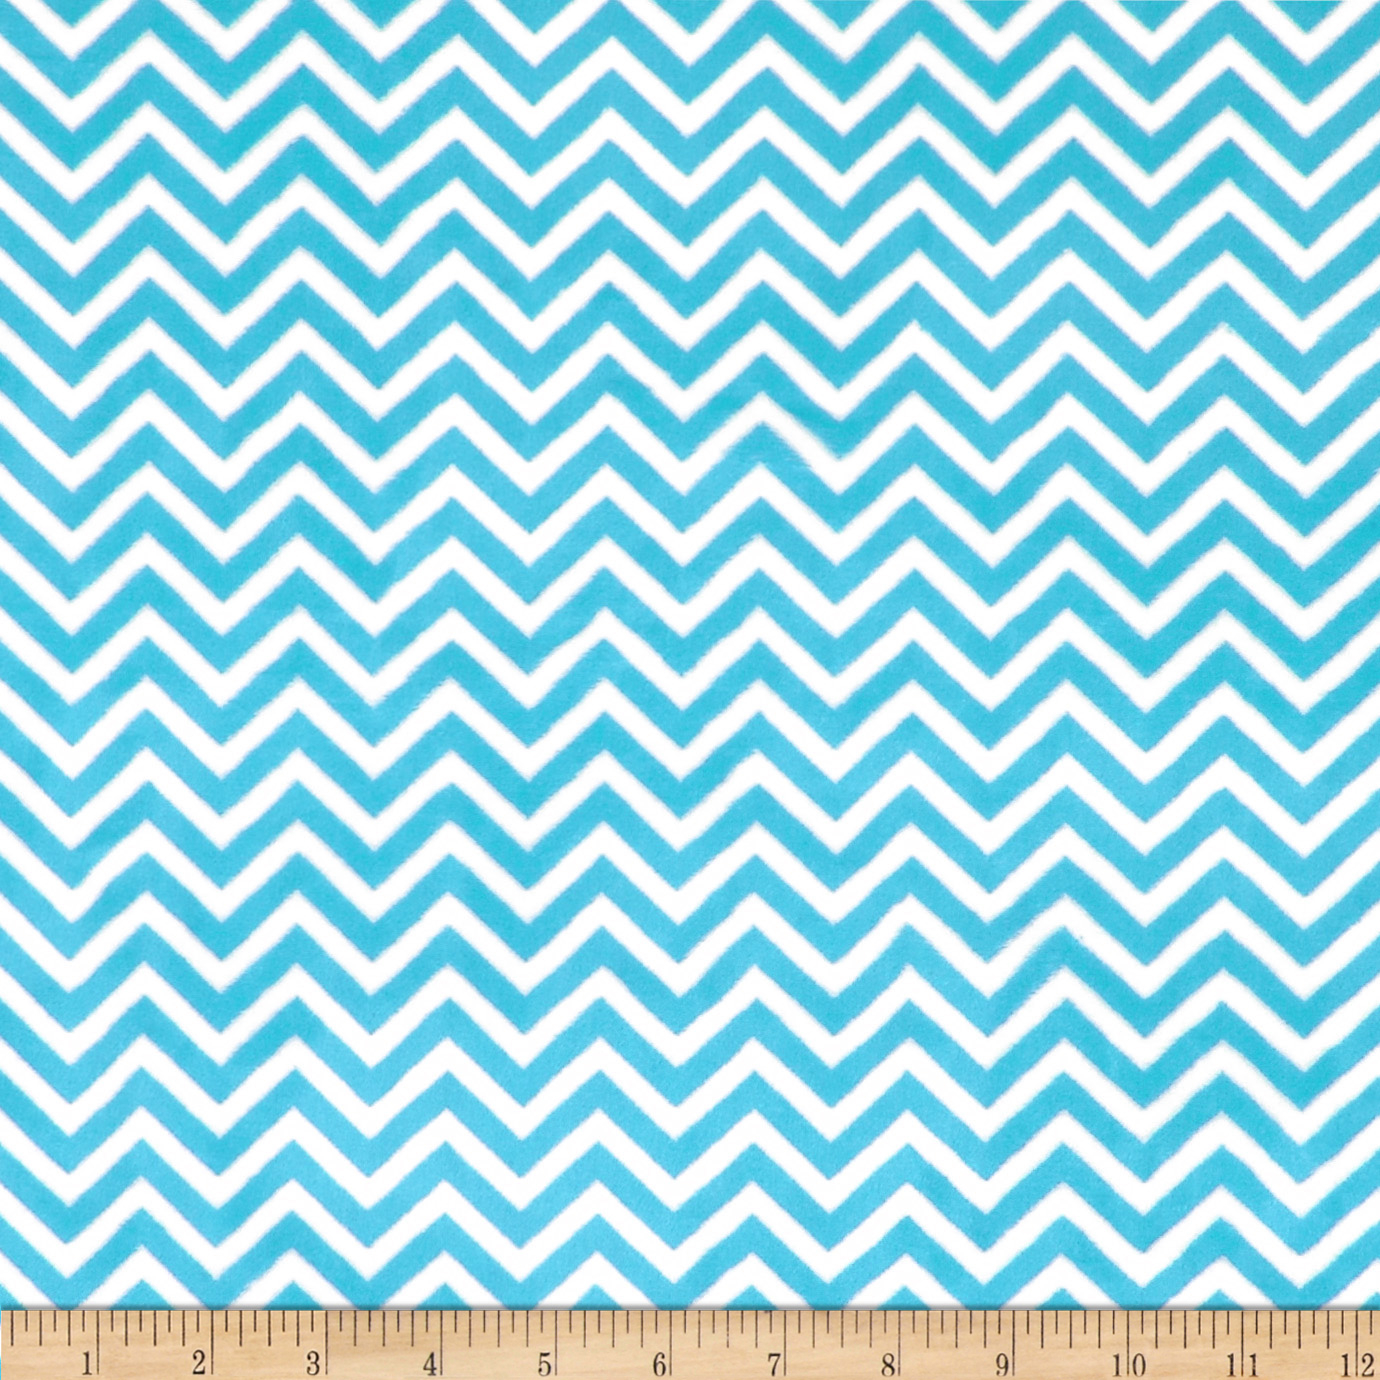 Minky Cuddle Mini Chevron Turquoise/Snow Fabric